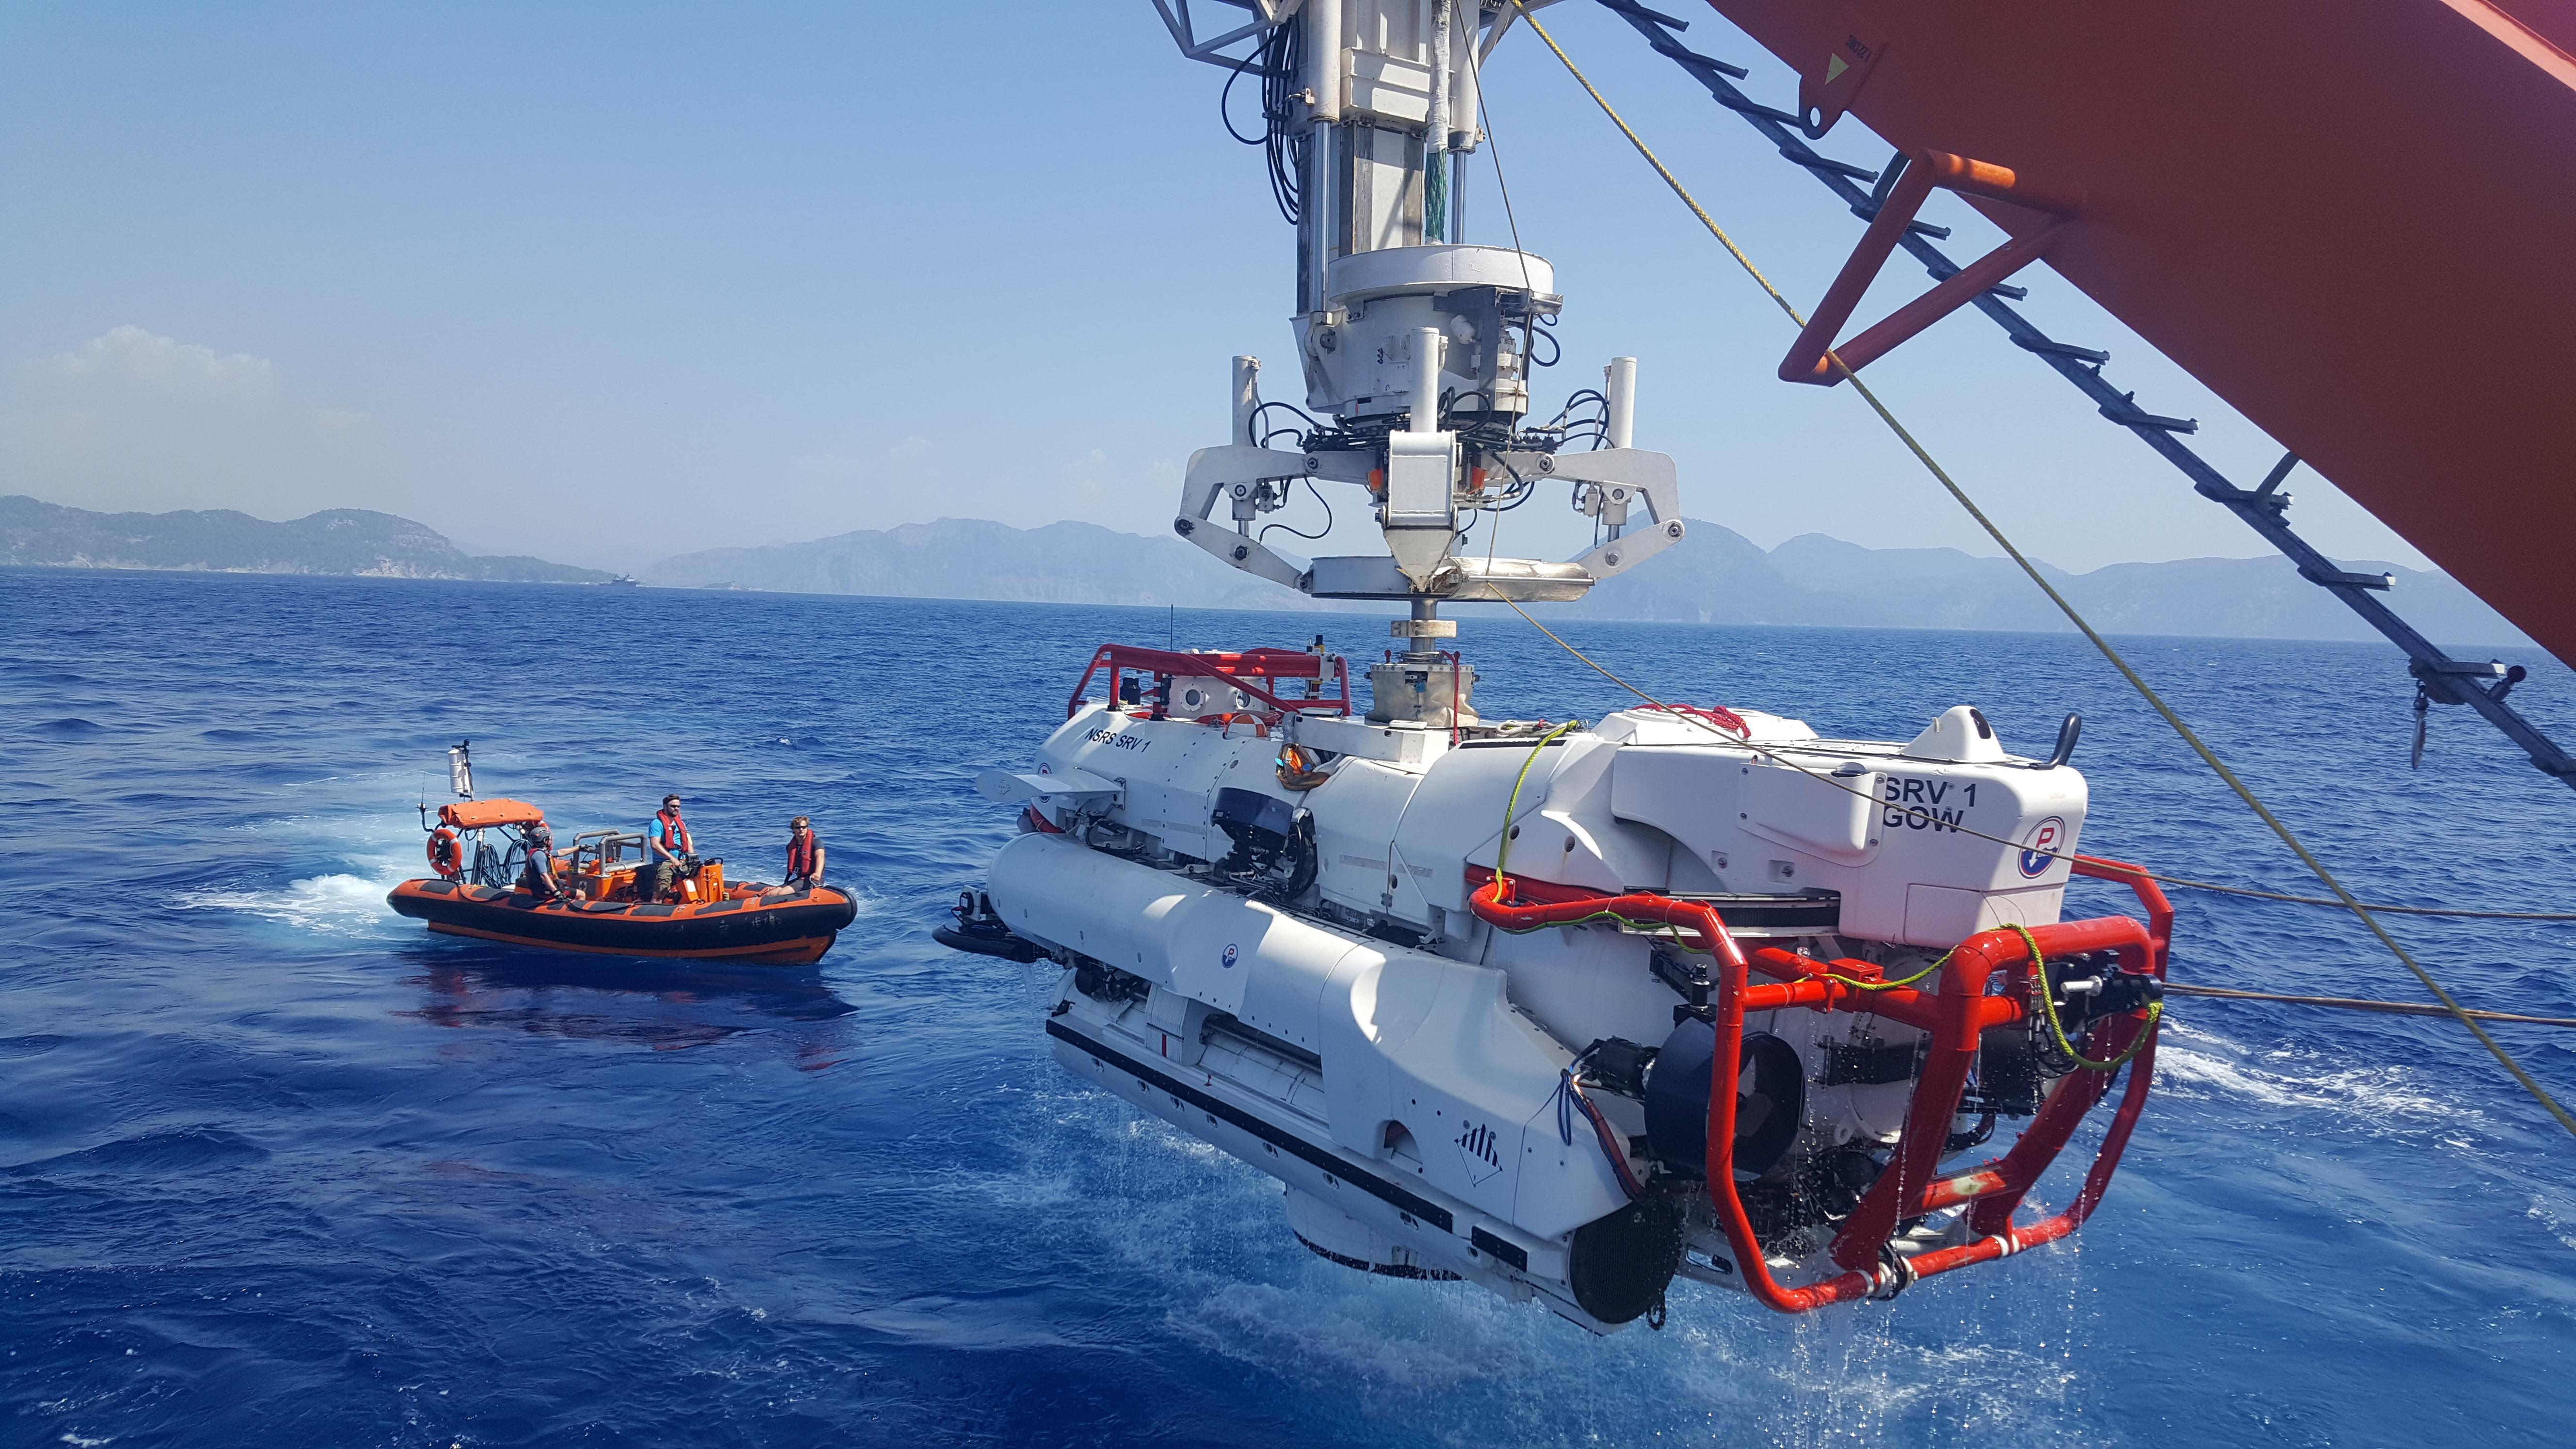 James Fisher and Sons has a number of businesses in the North Sea oil sector. Pictured is a submarine rescue vessel from James Fisher Defence